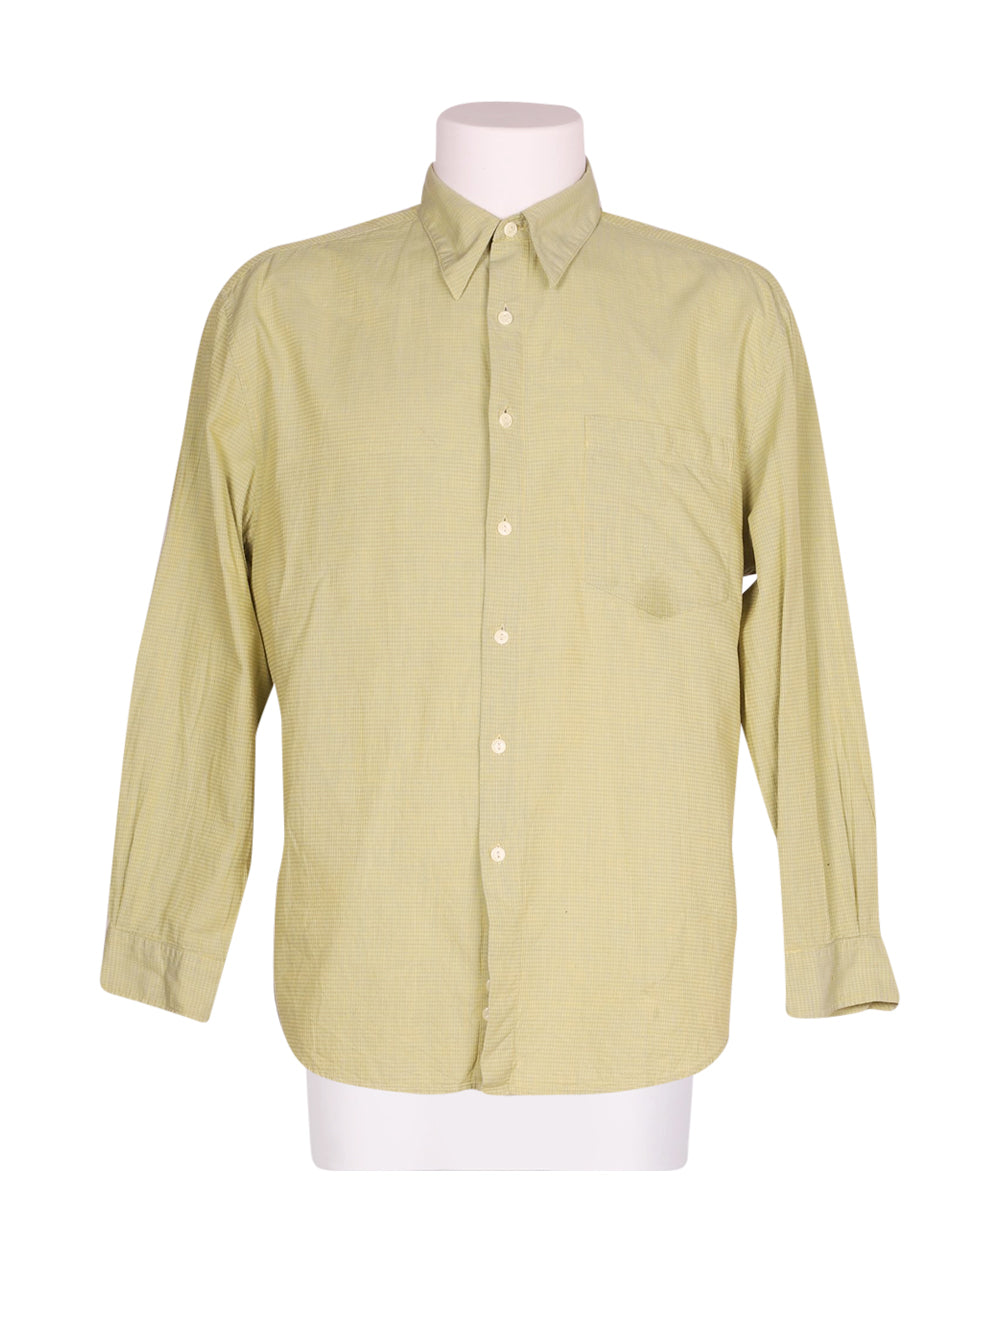 Front photo of Preloved reunion Green Man's shirt - size 40/L